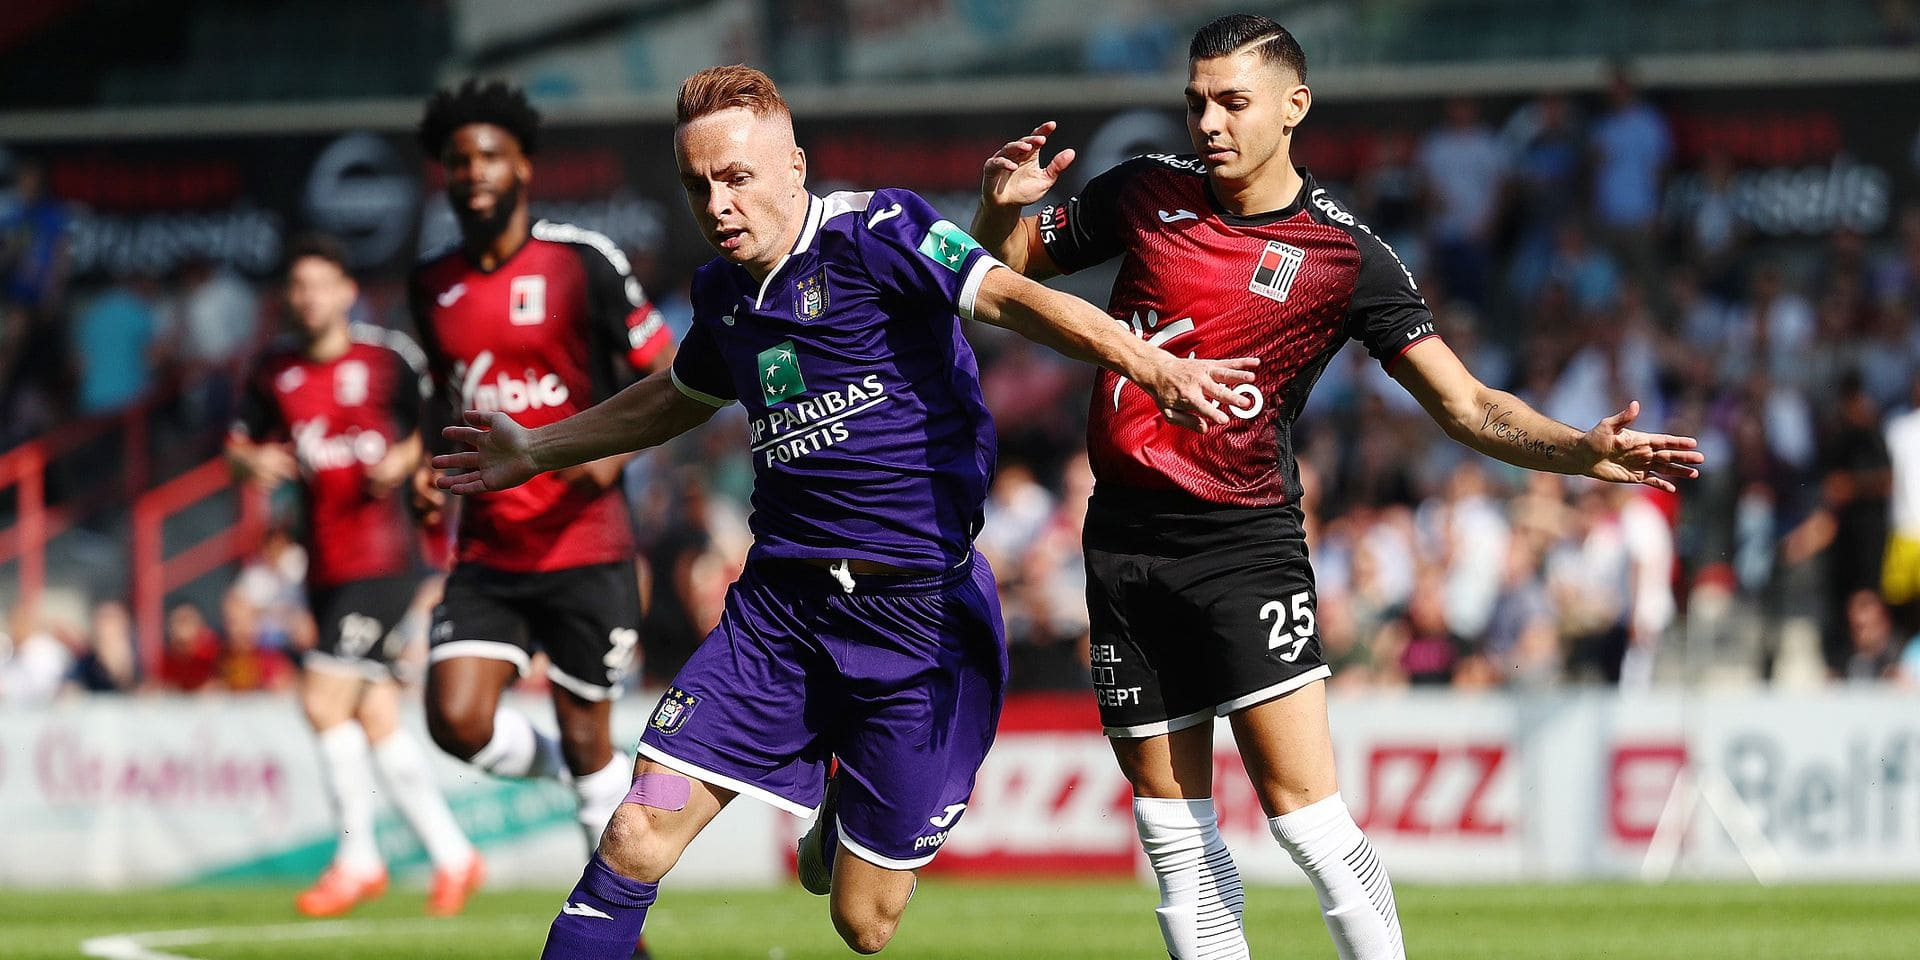 Anderlecht's Adrien Trebel and RWDM's Anthony Bova fight for the ball during a friendly game between RWDM and first league team RSC Anderlecht, Saturday 22 June 2019 in Brussels, in preparation of the upcoming 2019-2020 Jupiler Pro League season. BELGA PHOTO VIRGINIE LEFOUR